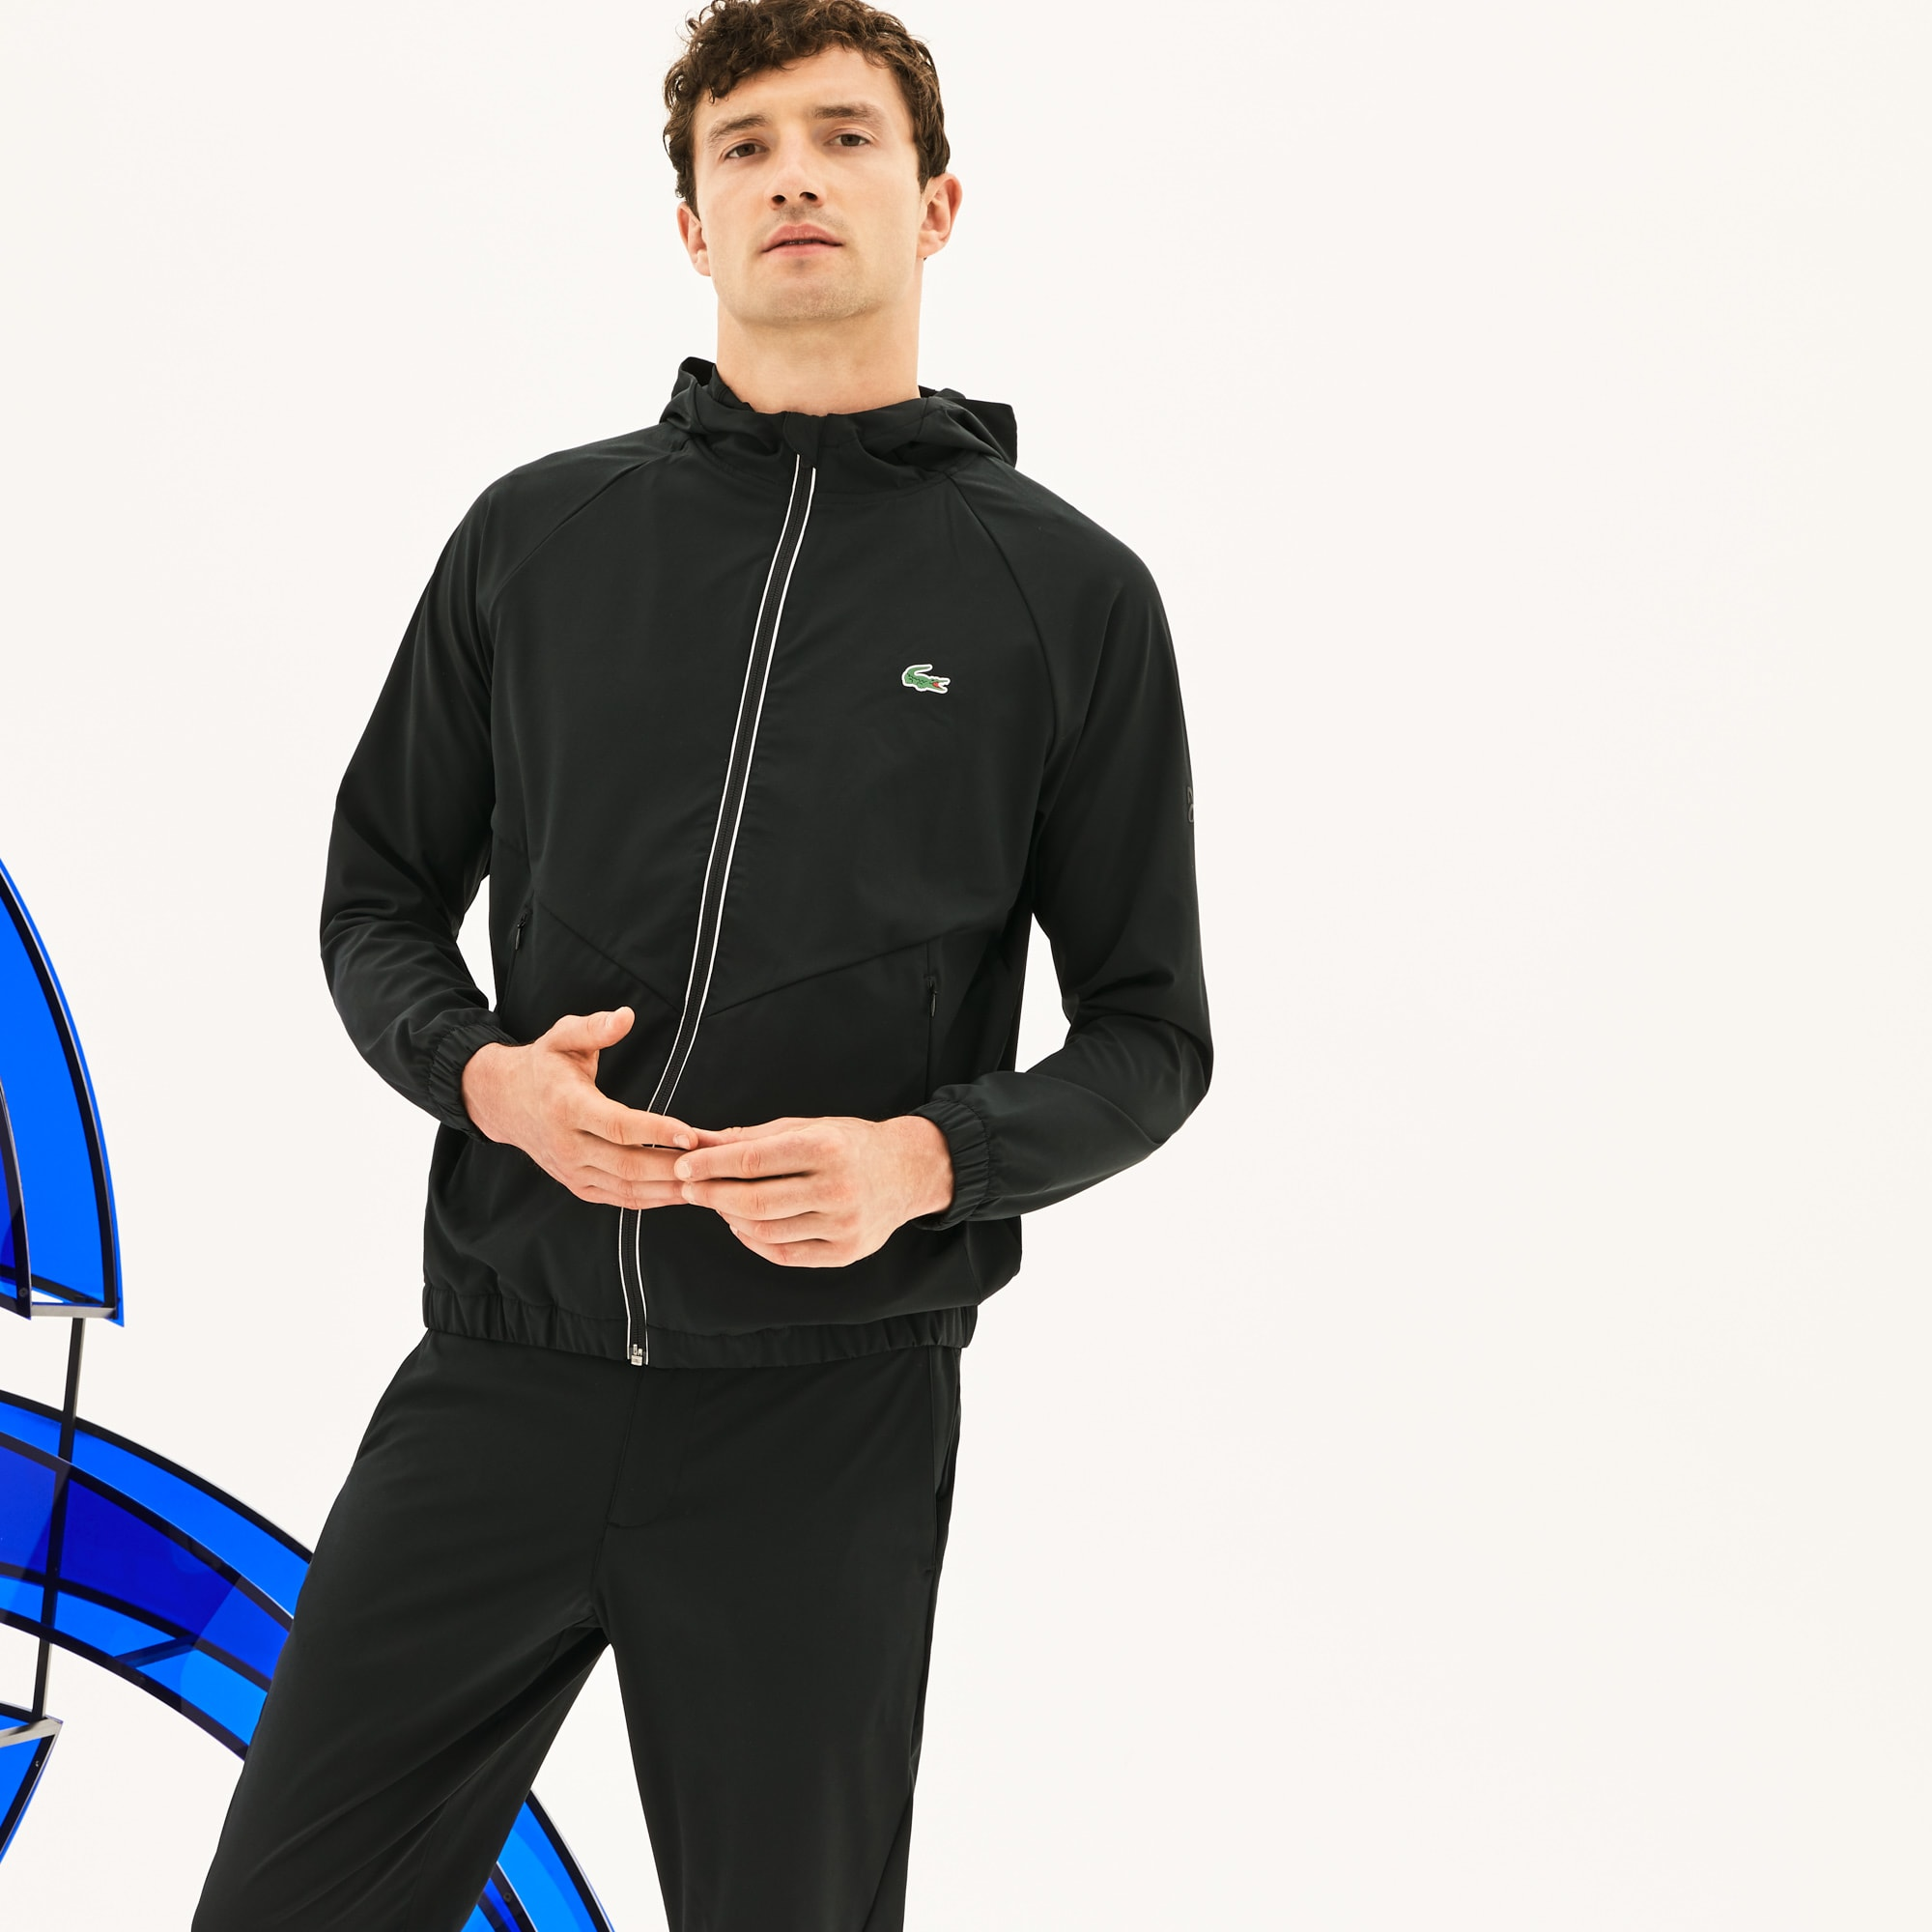 Veste à capuche Lacoste SPORT Collection Novak Djokovic - Off Court Premium en midlayer technique stretch